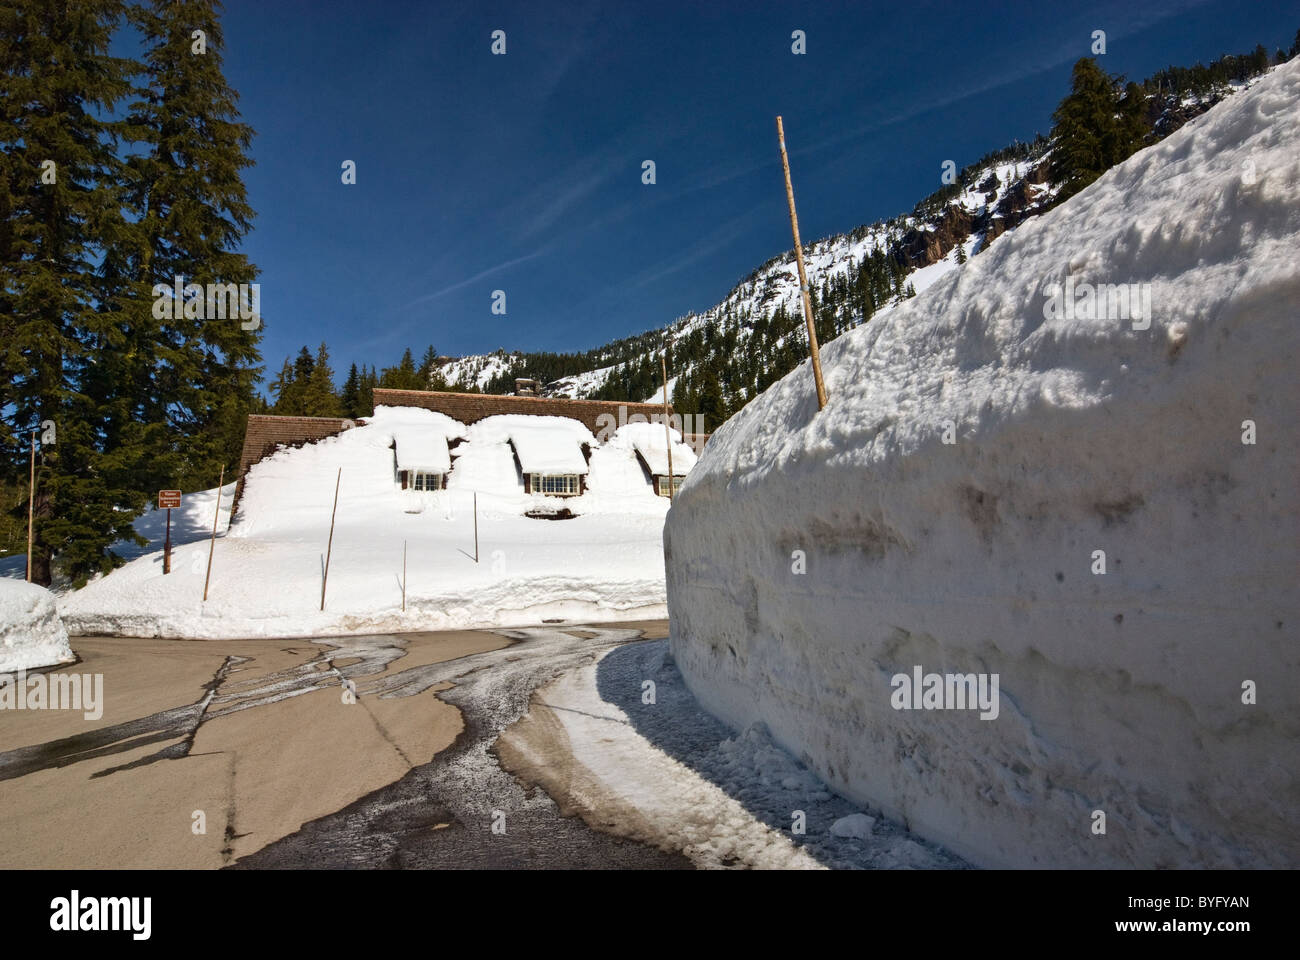 Walls of snow in winter around Steel Park Headquarters at Crater Lake  National Park, Oregon, USA